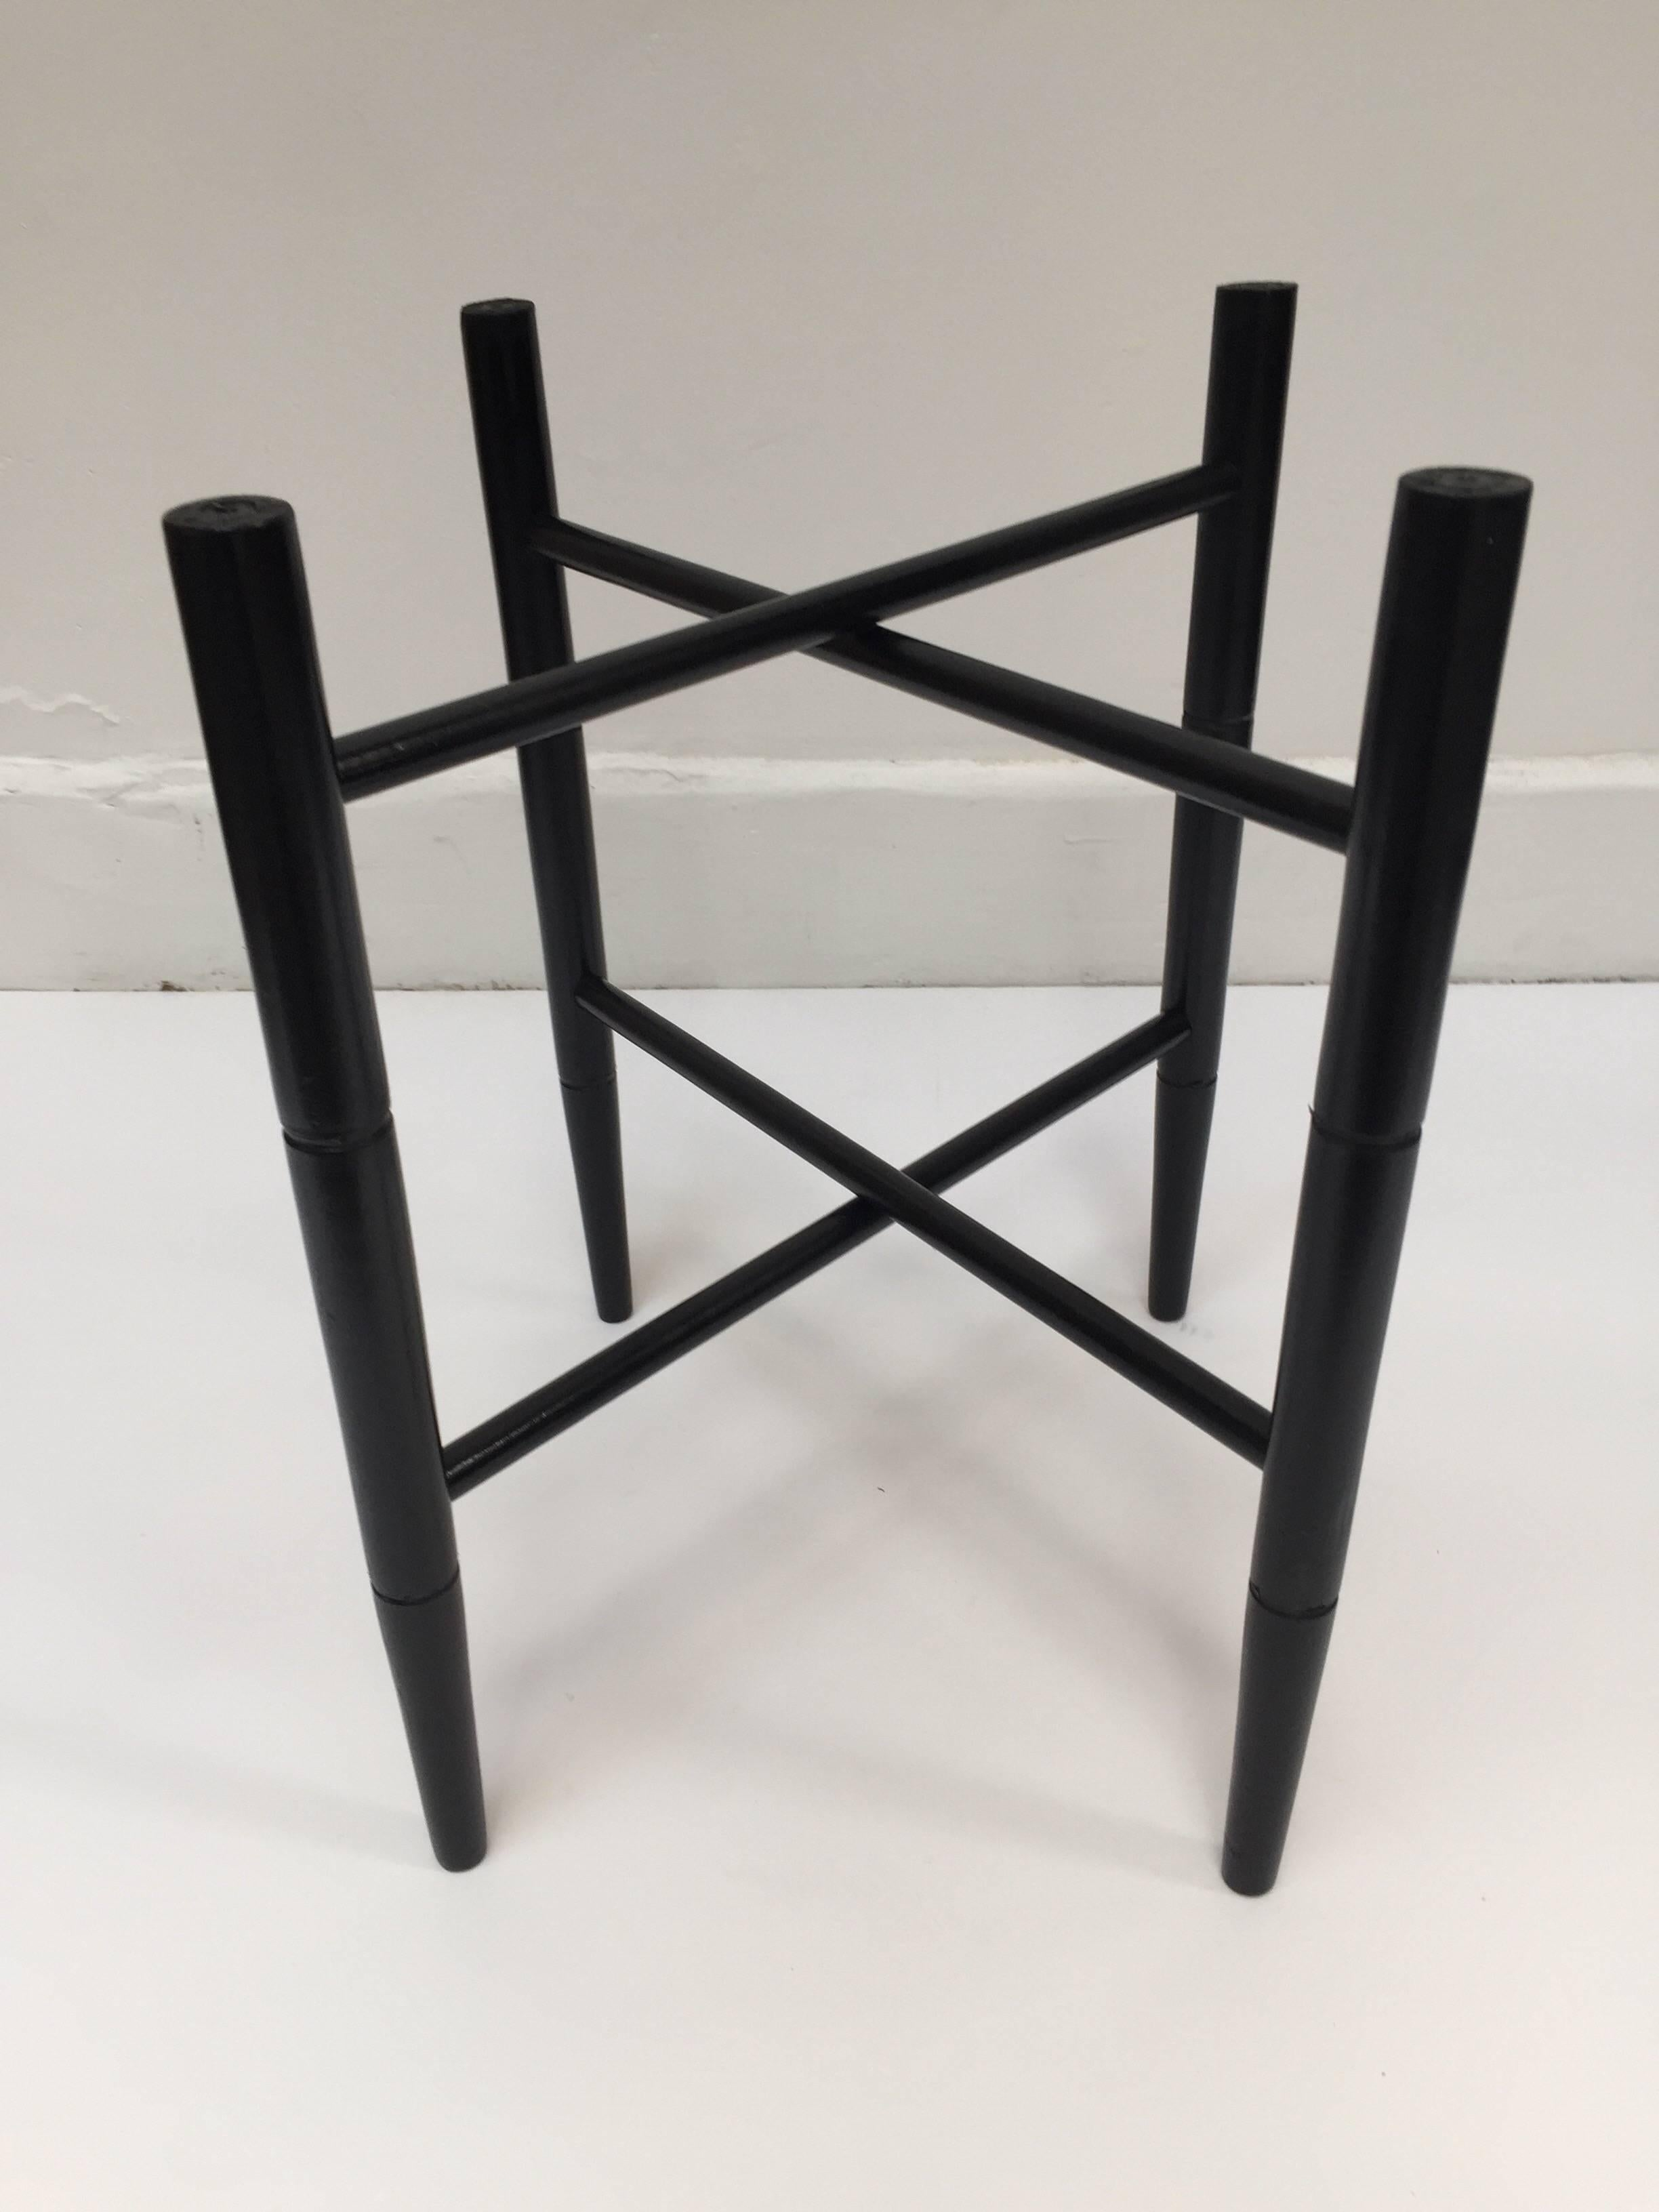 Charmant Vintage Folding Black Wooden Tray Table Stand. Size Is 17.5